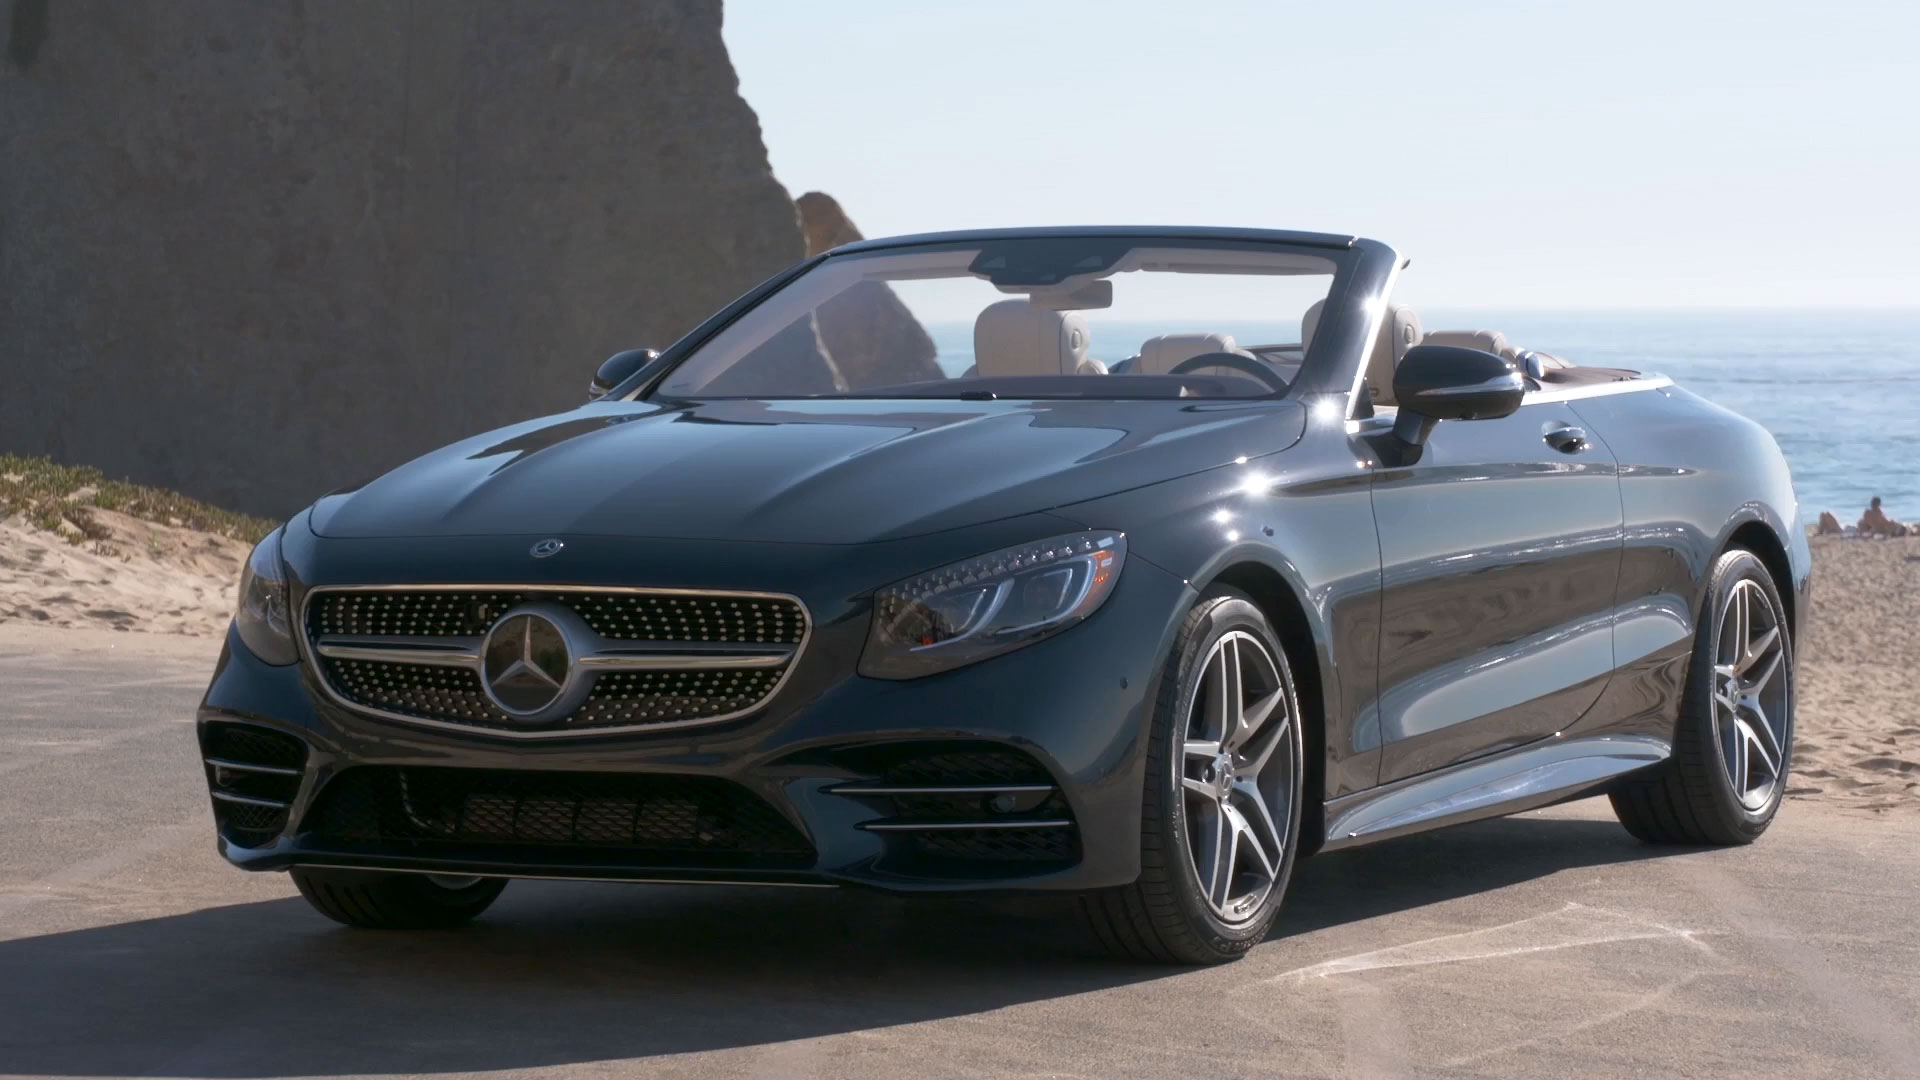 The new Mercedes Benz S 560 Cabriolet Exterior Design in Blue metallic